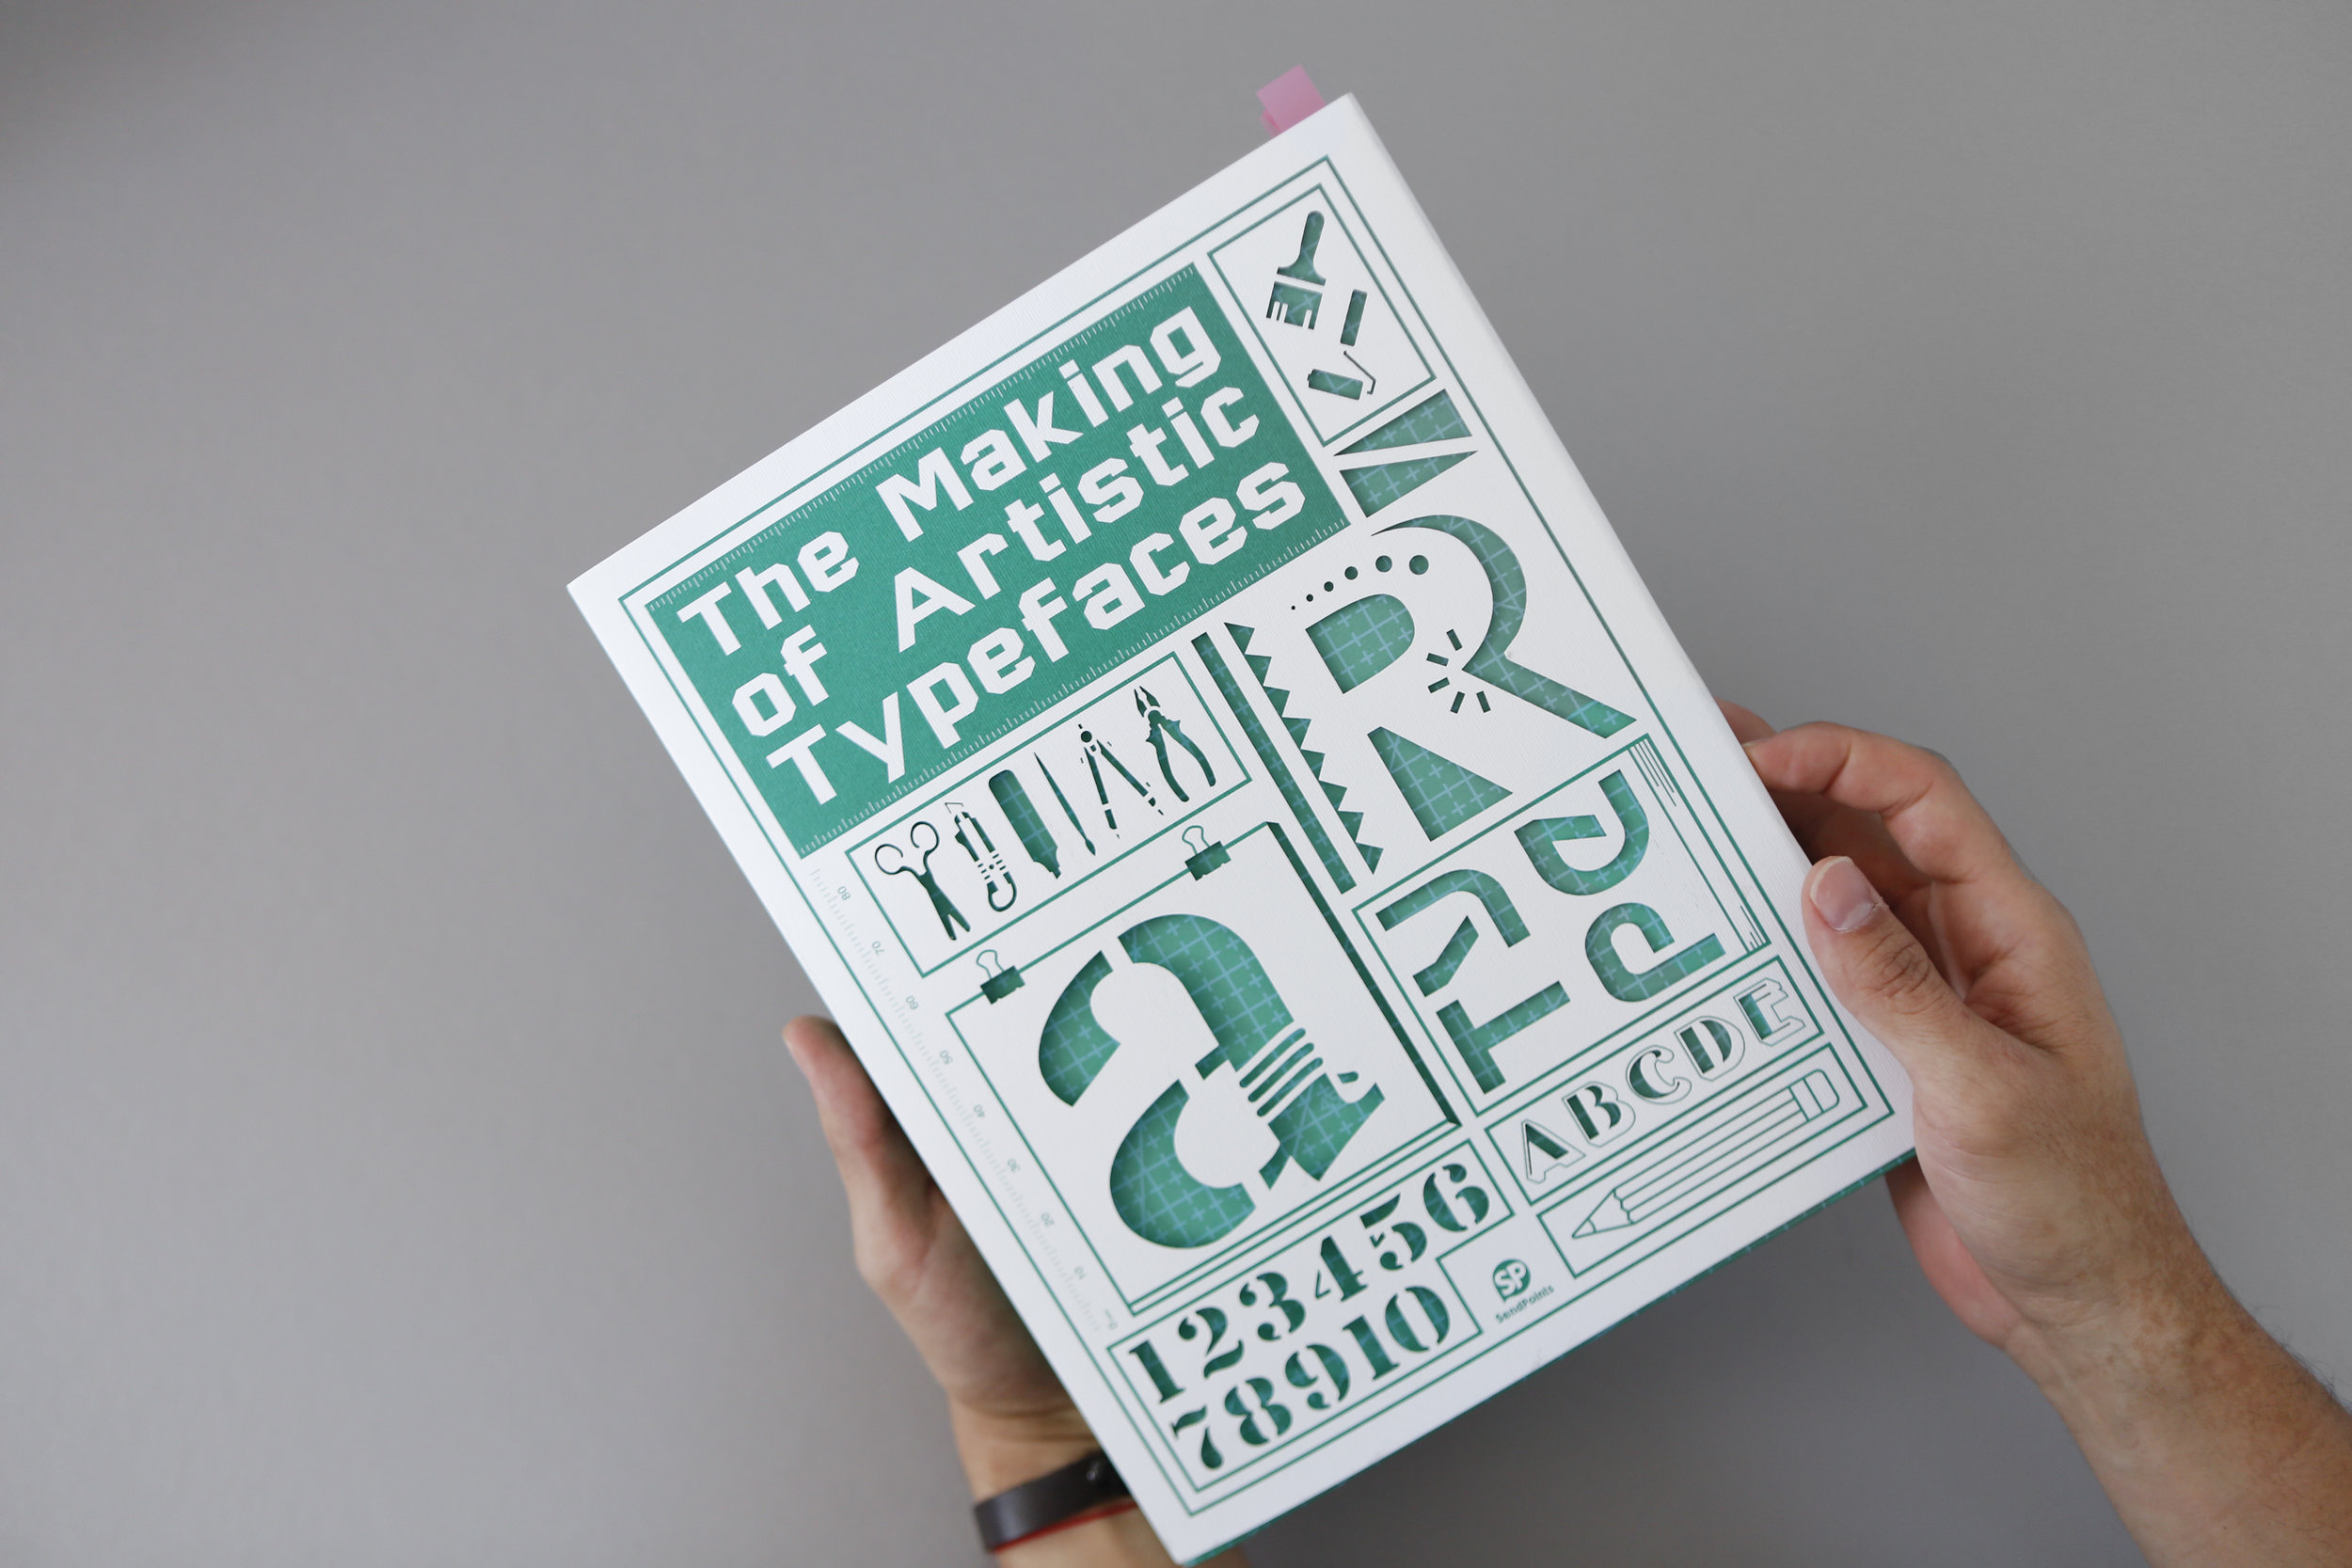 the-making-of-artistic-typeface (2).jpg